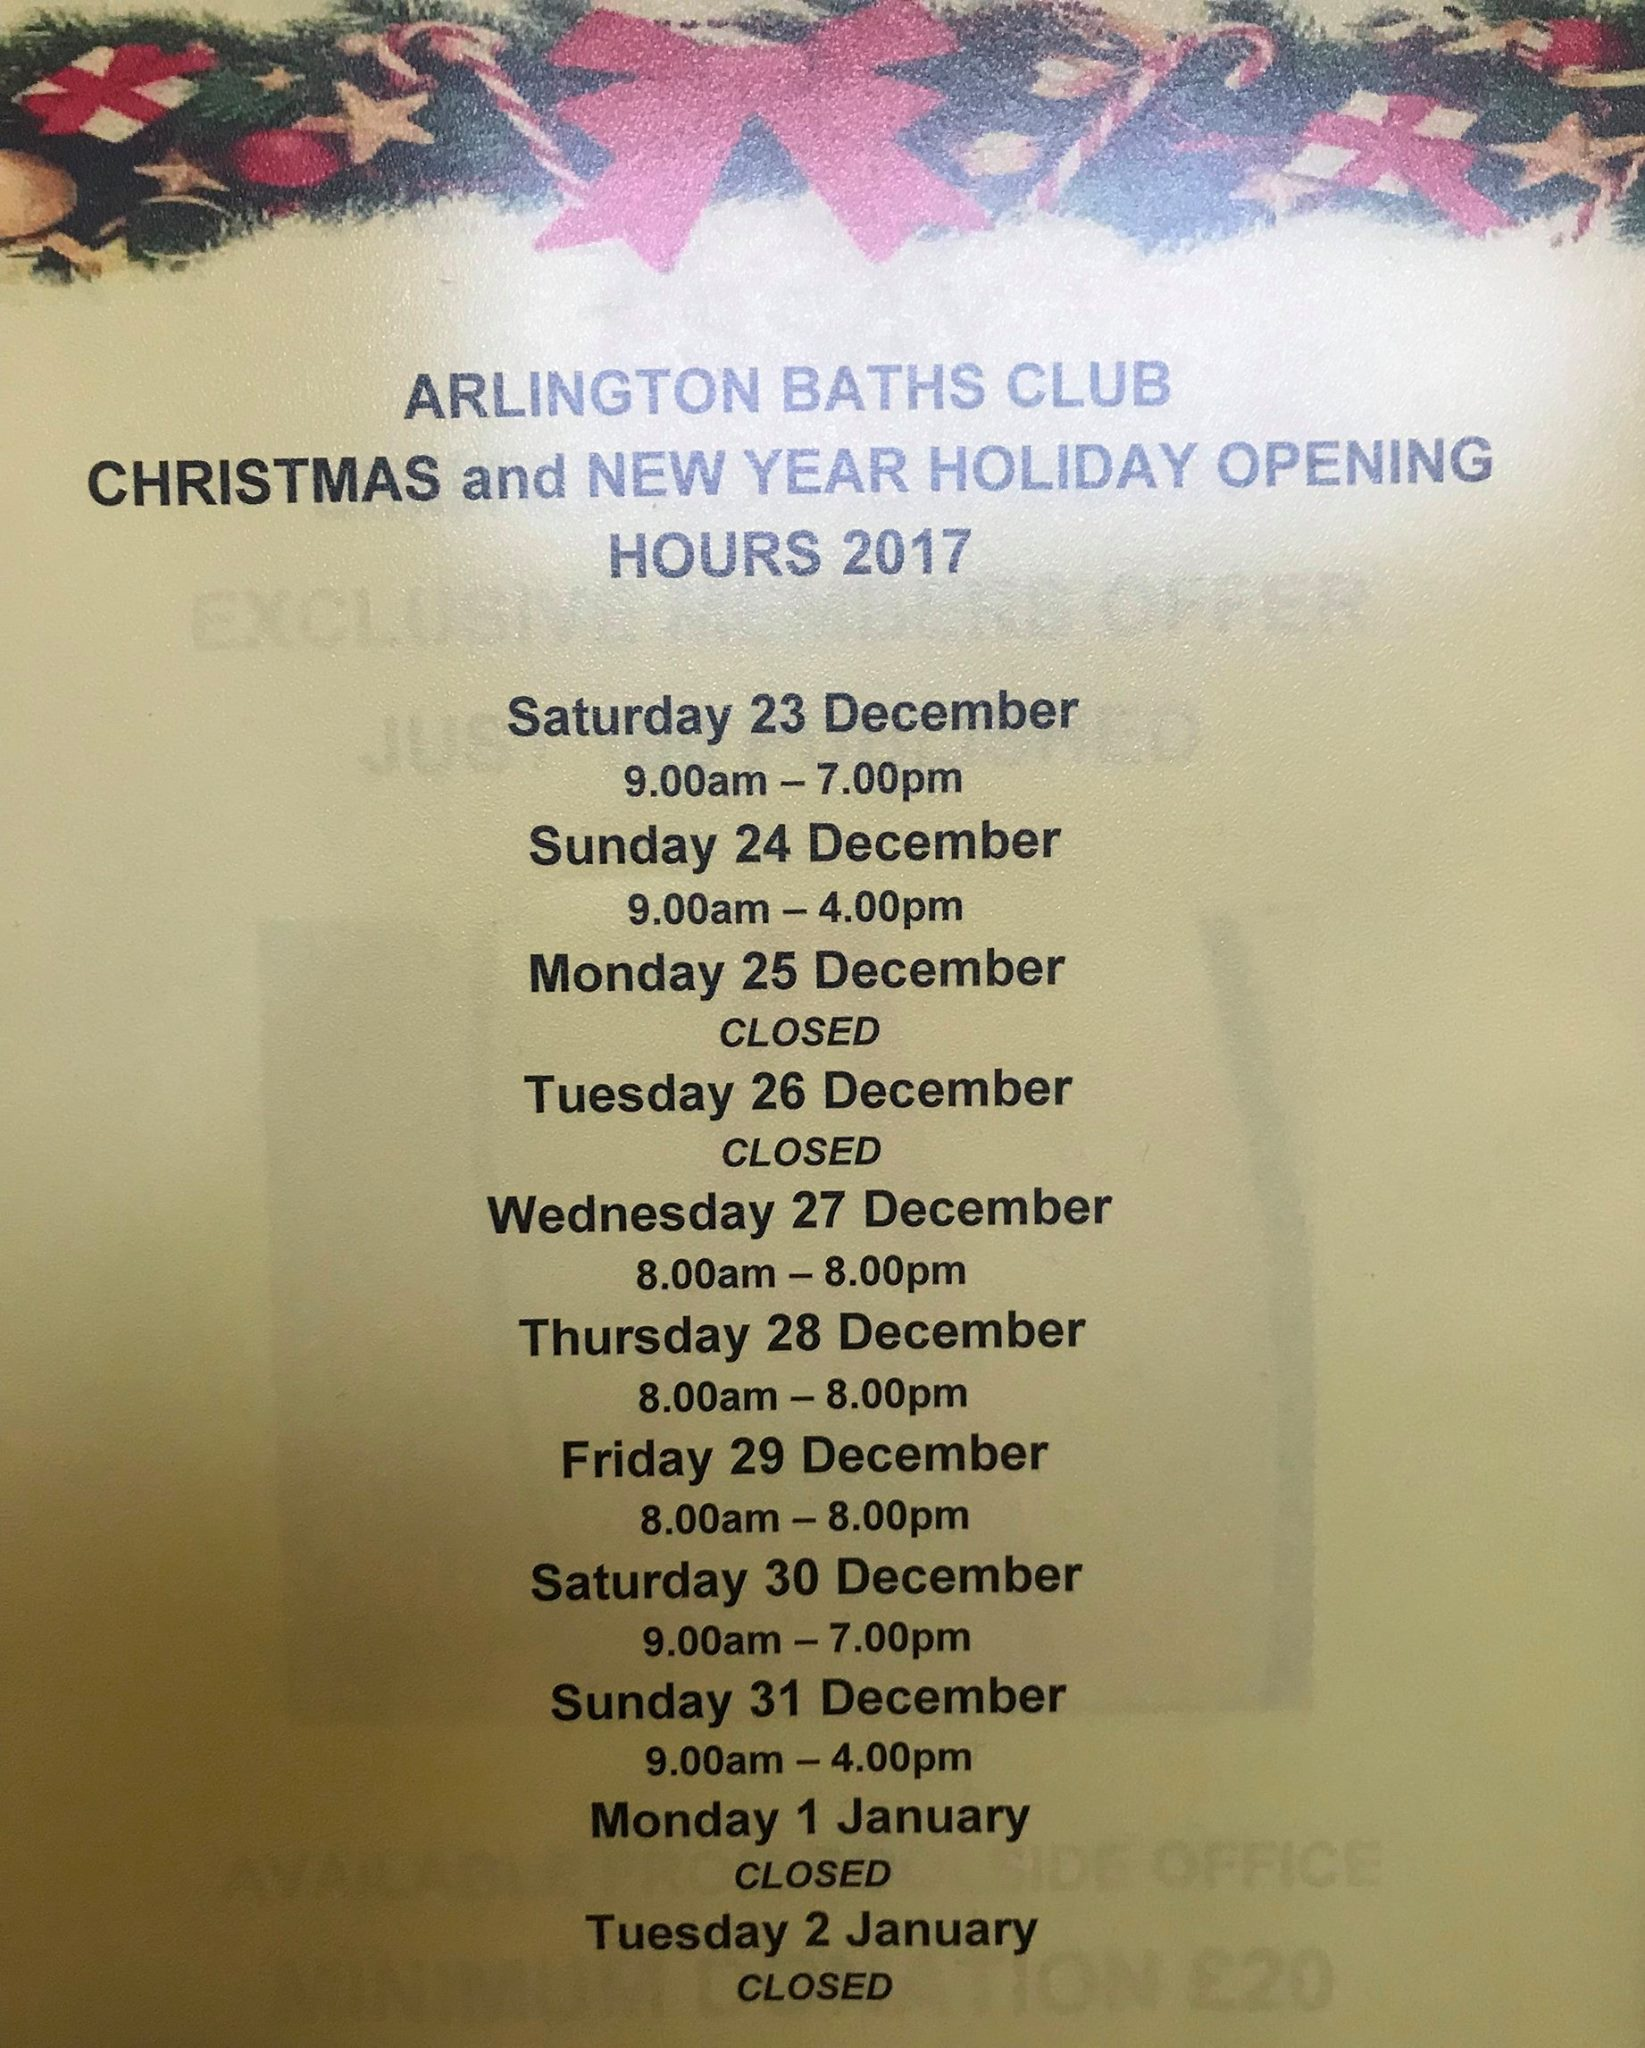 Opening hours from 23 December 2017 to 2 January 2018